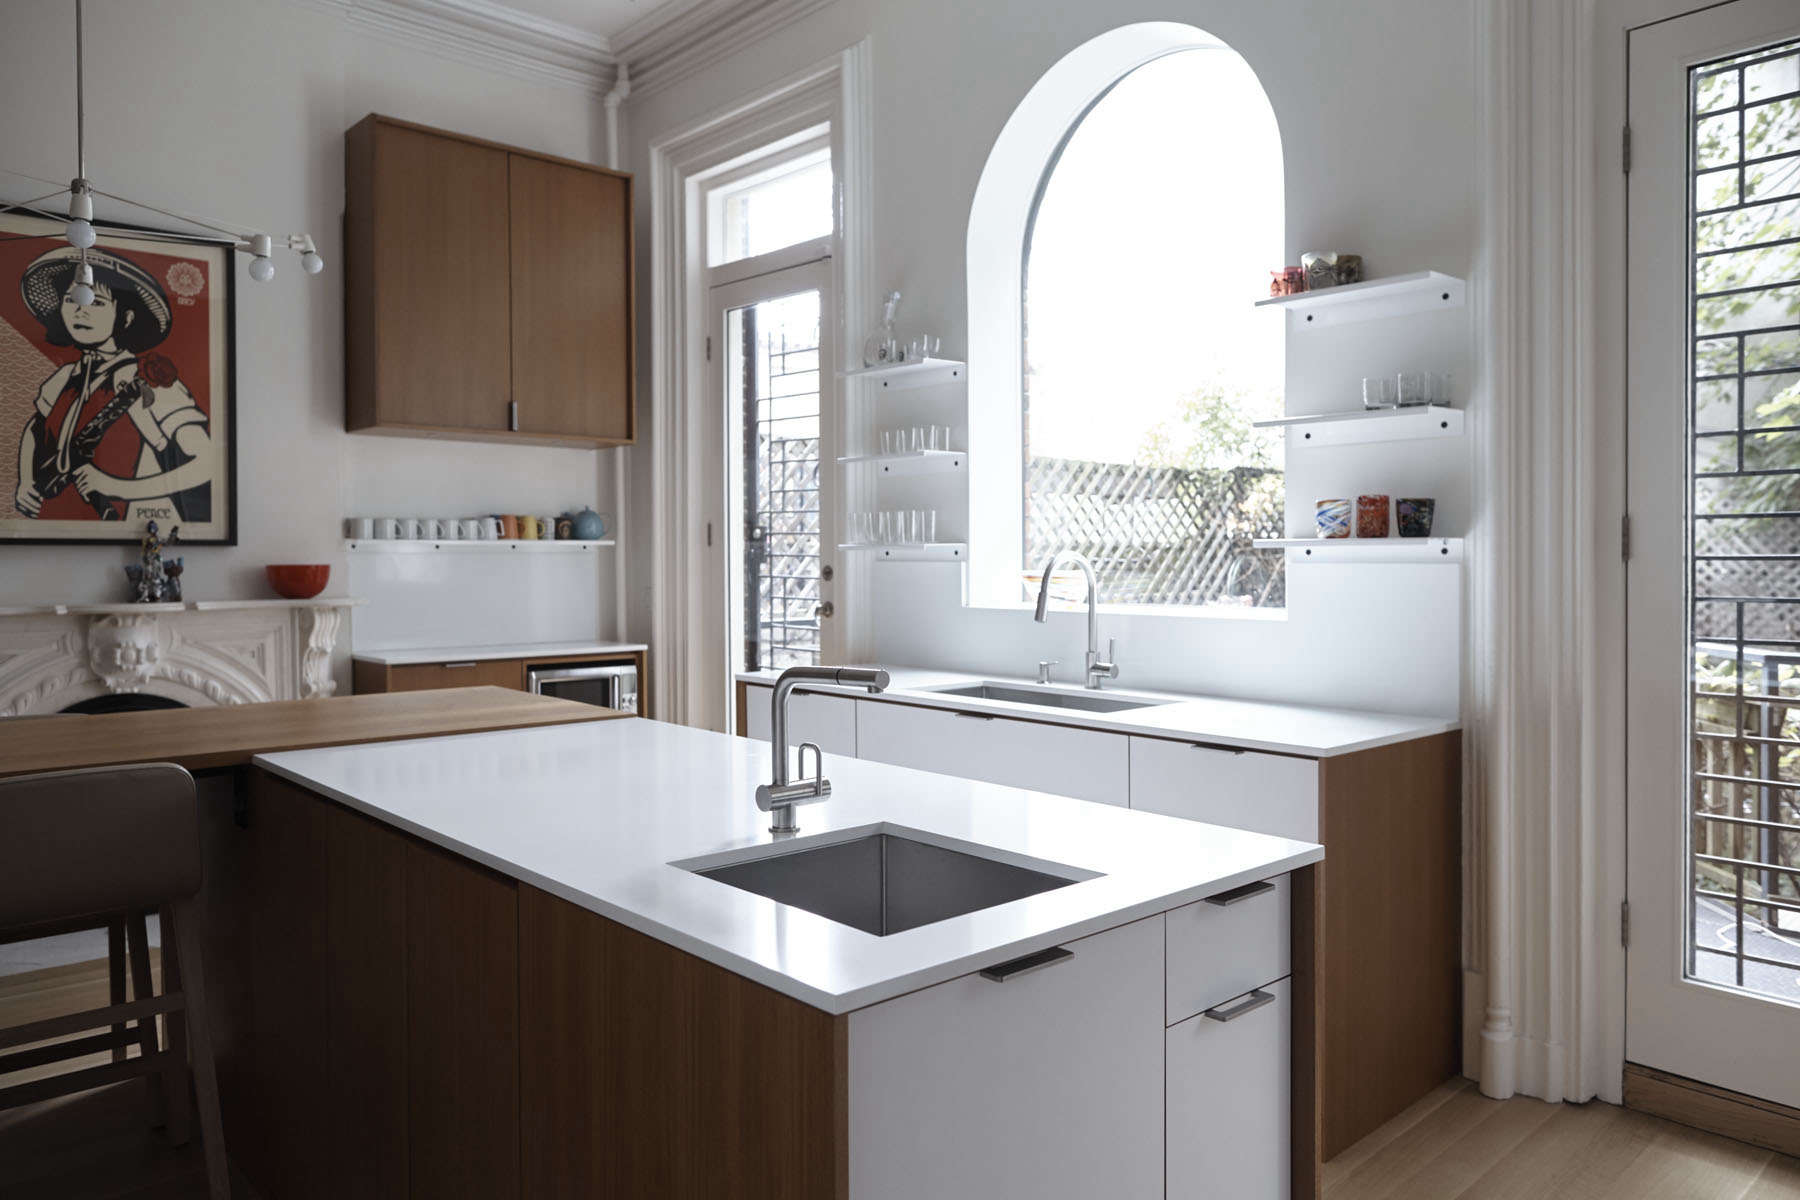 Used kitchen cabinets brooklyn ny - Used Kitchen Cabinets Brooklyn Ny A Preserved Historic Setting For A Modern Kitchen Remodel By Download